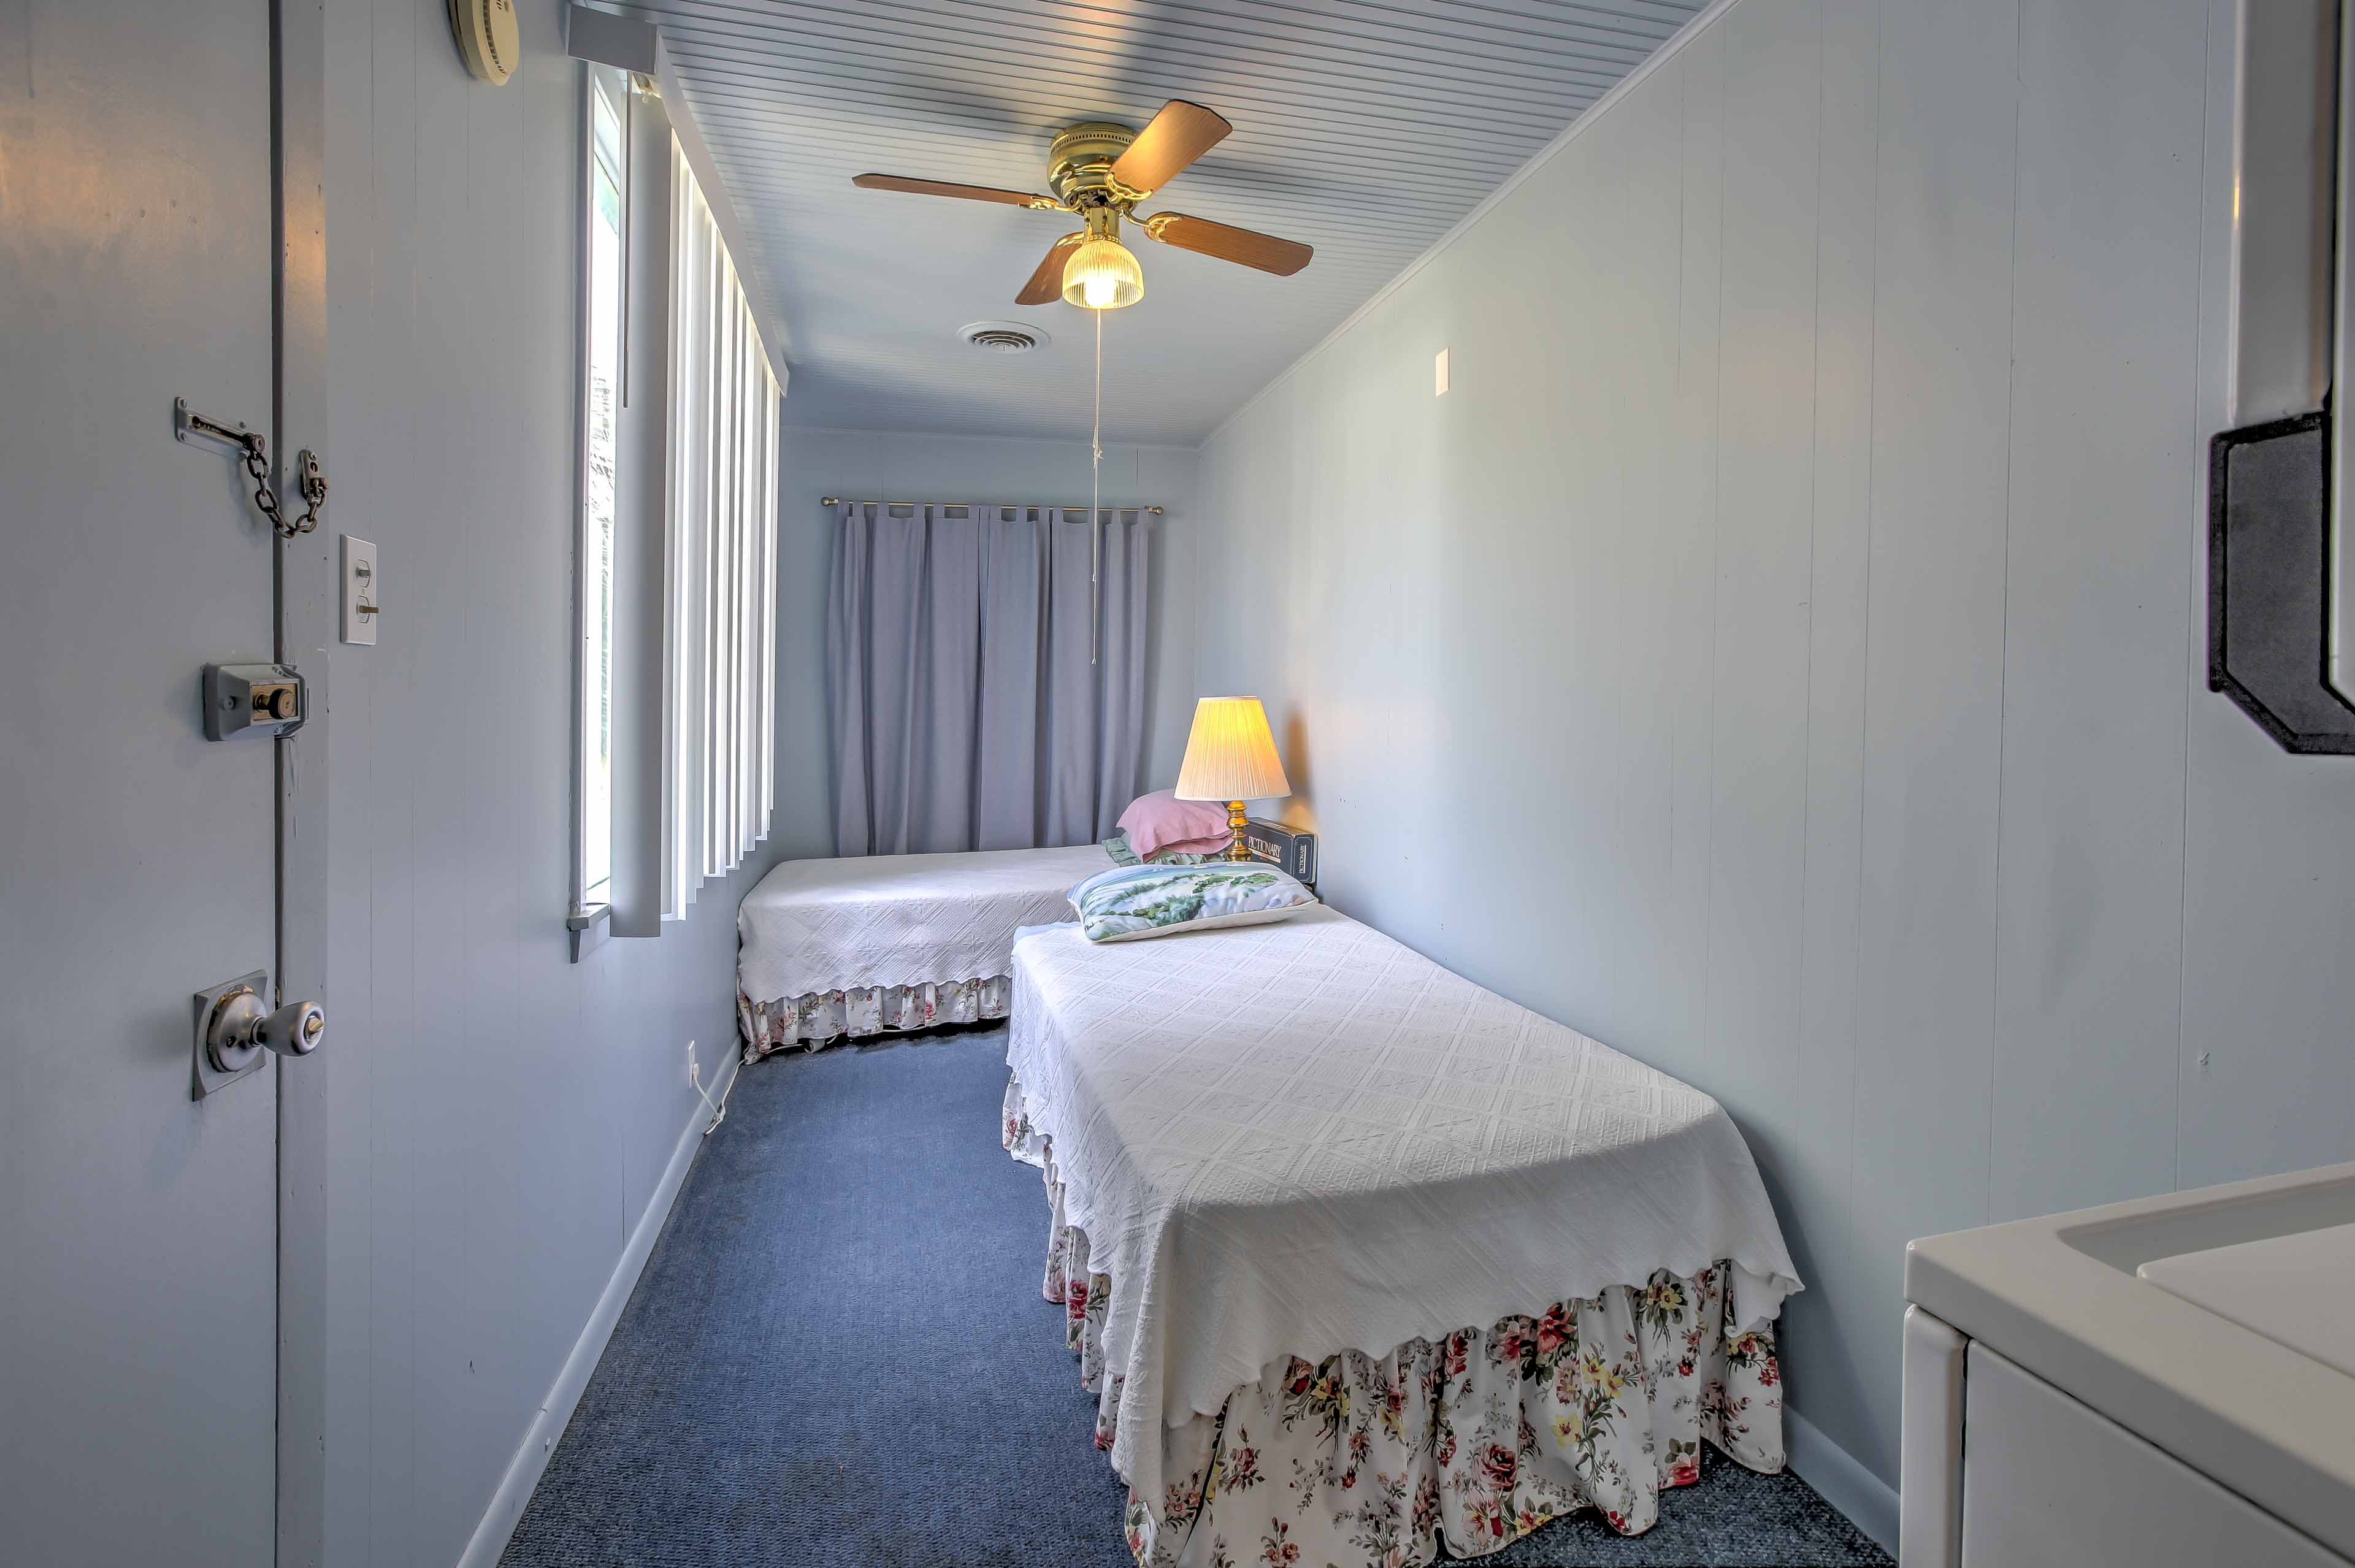 There are 2 twin-sized beds in an additional room.